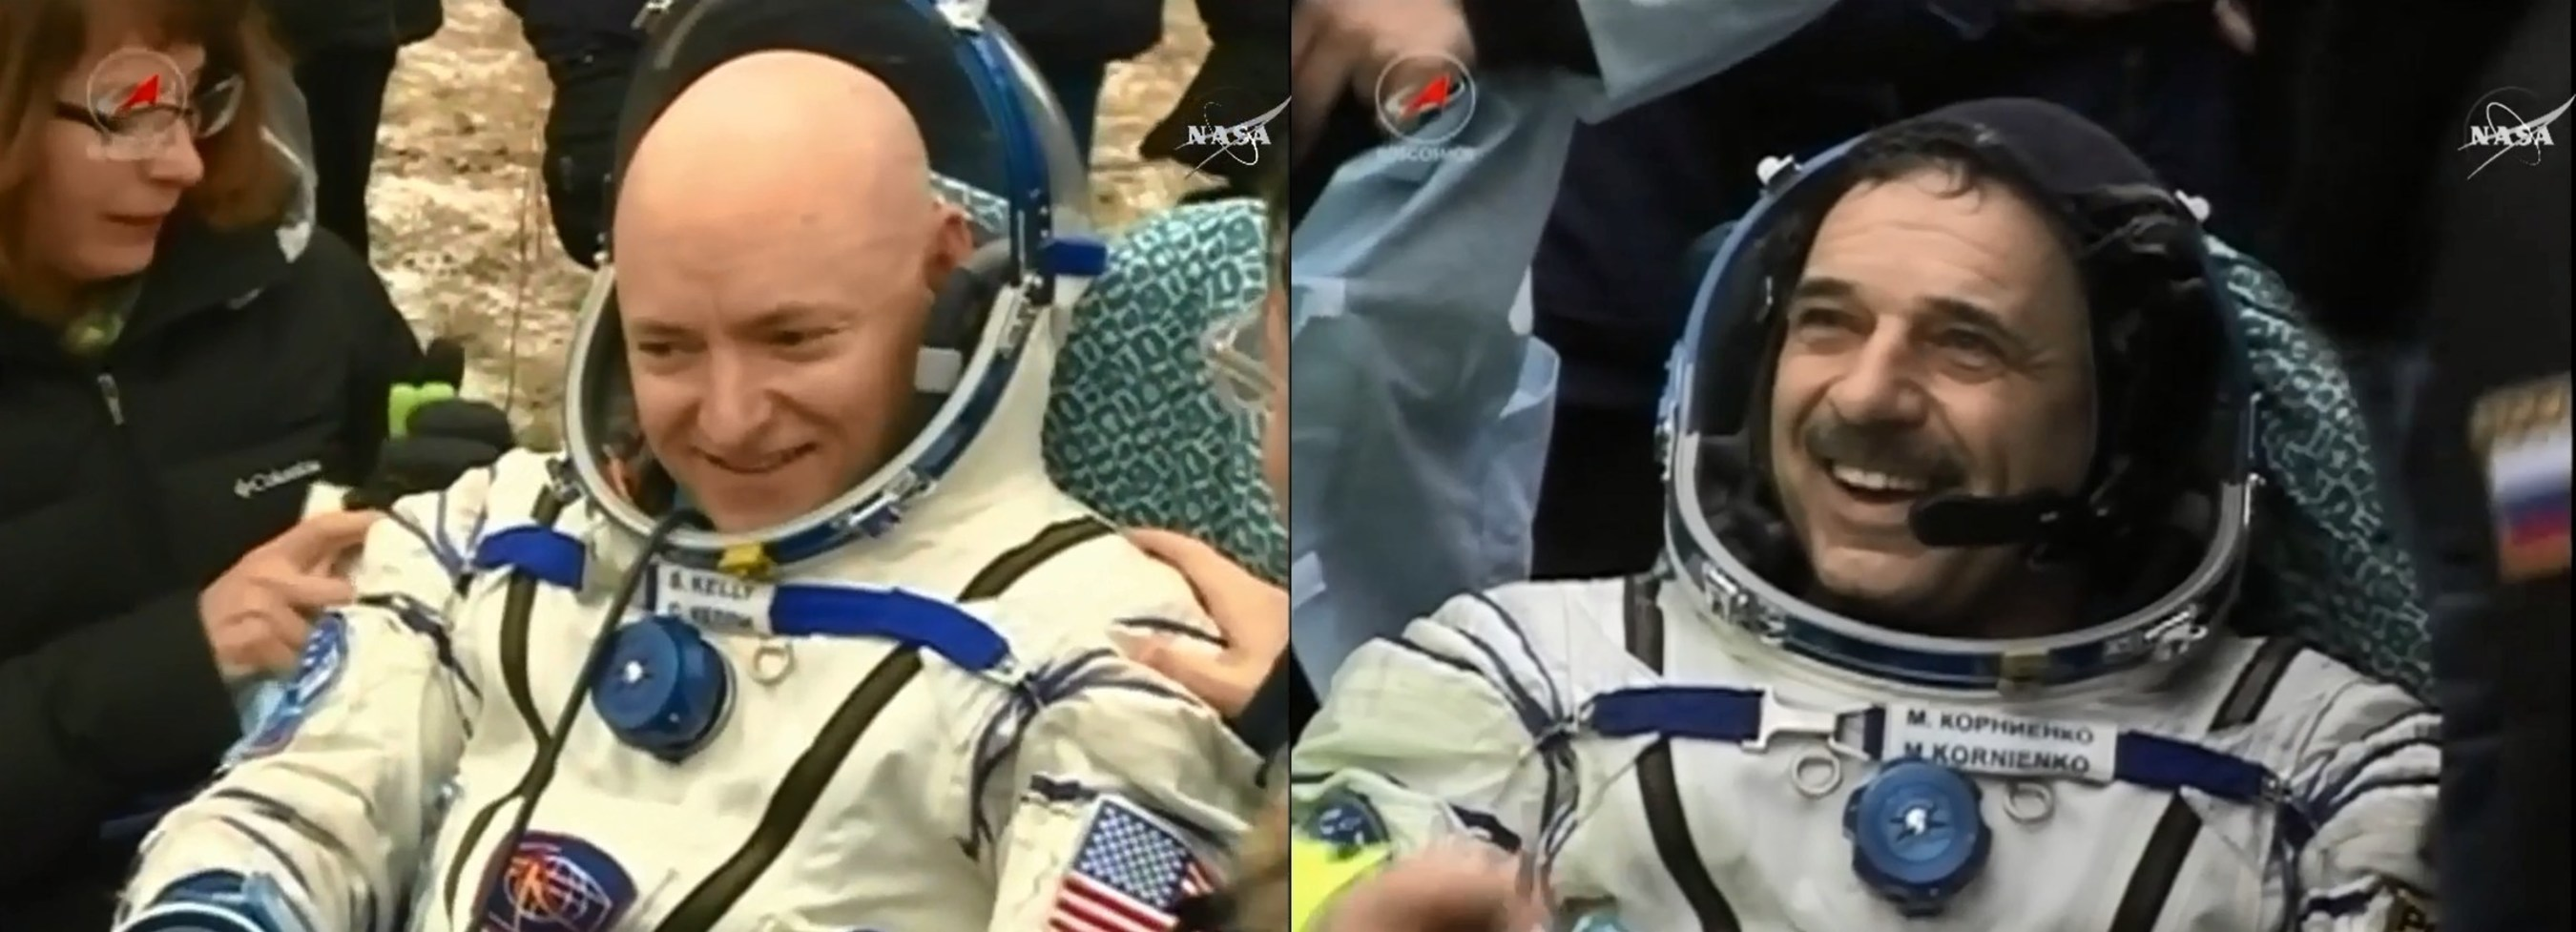 NASA astronaut and Expedition 46 Commander Scott Kelly and his Russian counterpart Mikhail Kornienko returned to Earth Tuesday after a historic 340-day mission aboard the International Space Station. They landed in Kazakhstan at 11:26 p.m. EST (10:26 a.m. March 2 Kazakhstan time).